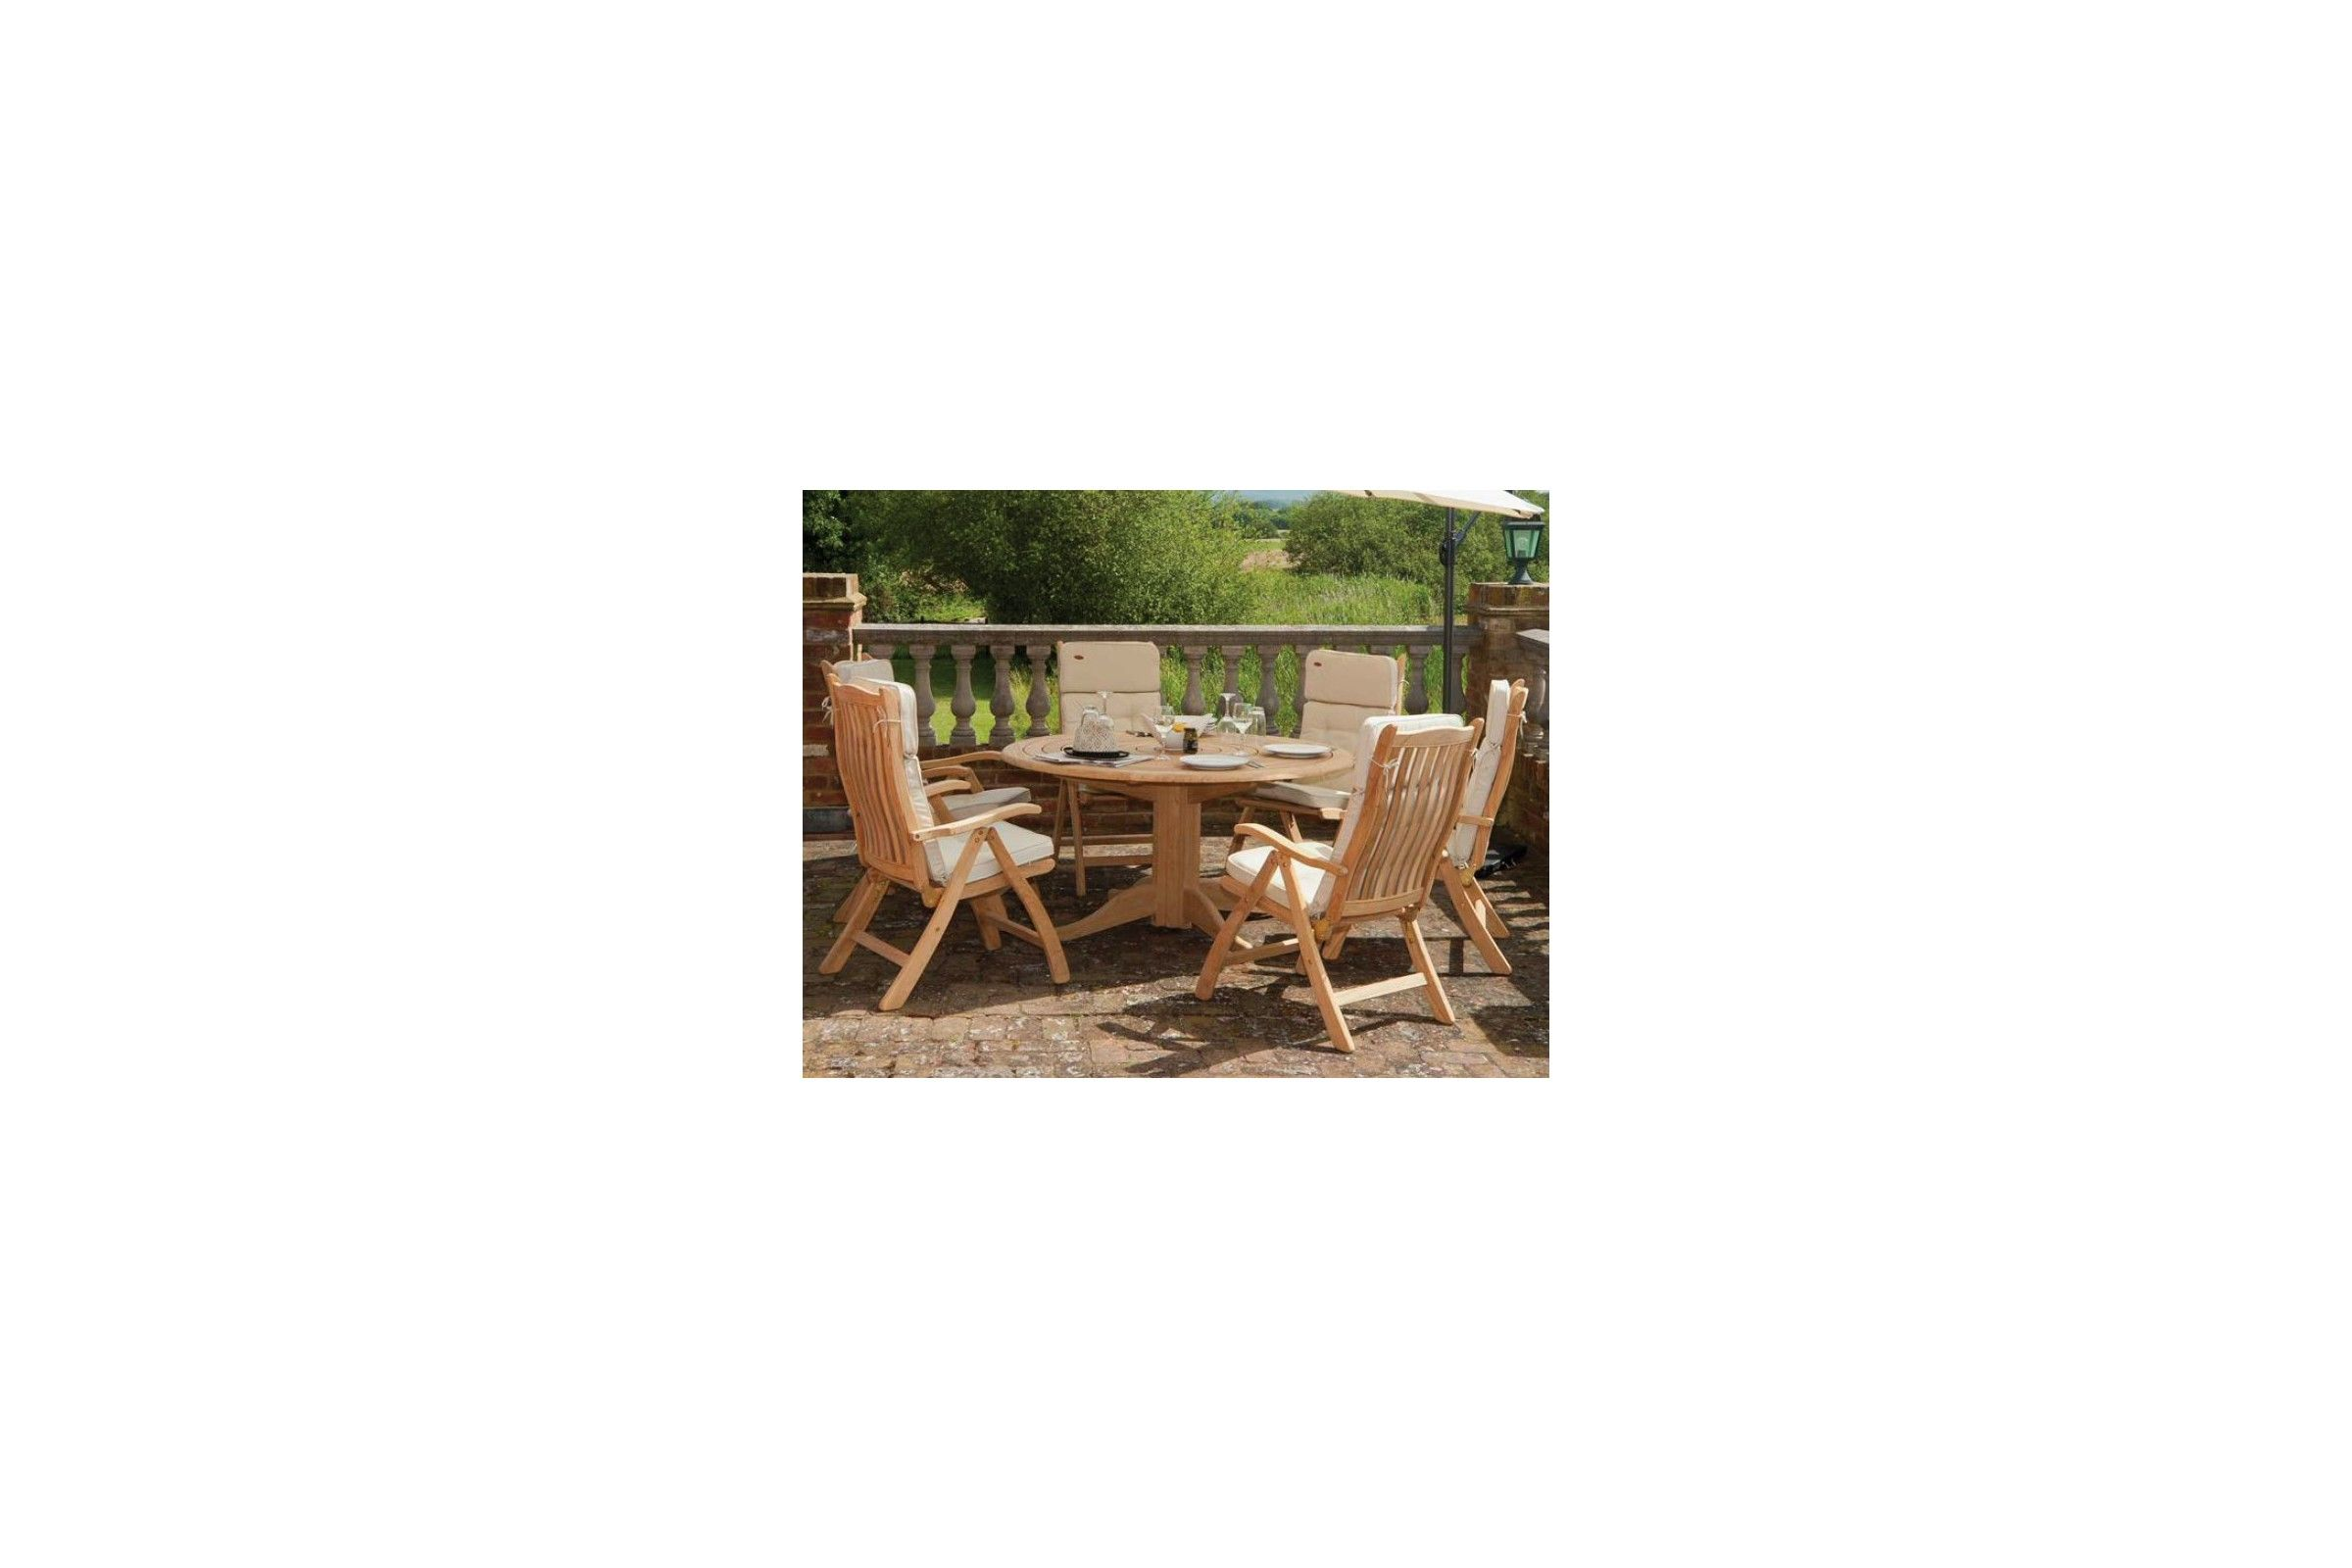 Table bois jardin leroy merlin - Salon de jardin fer forge leroy merlin ...